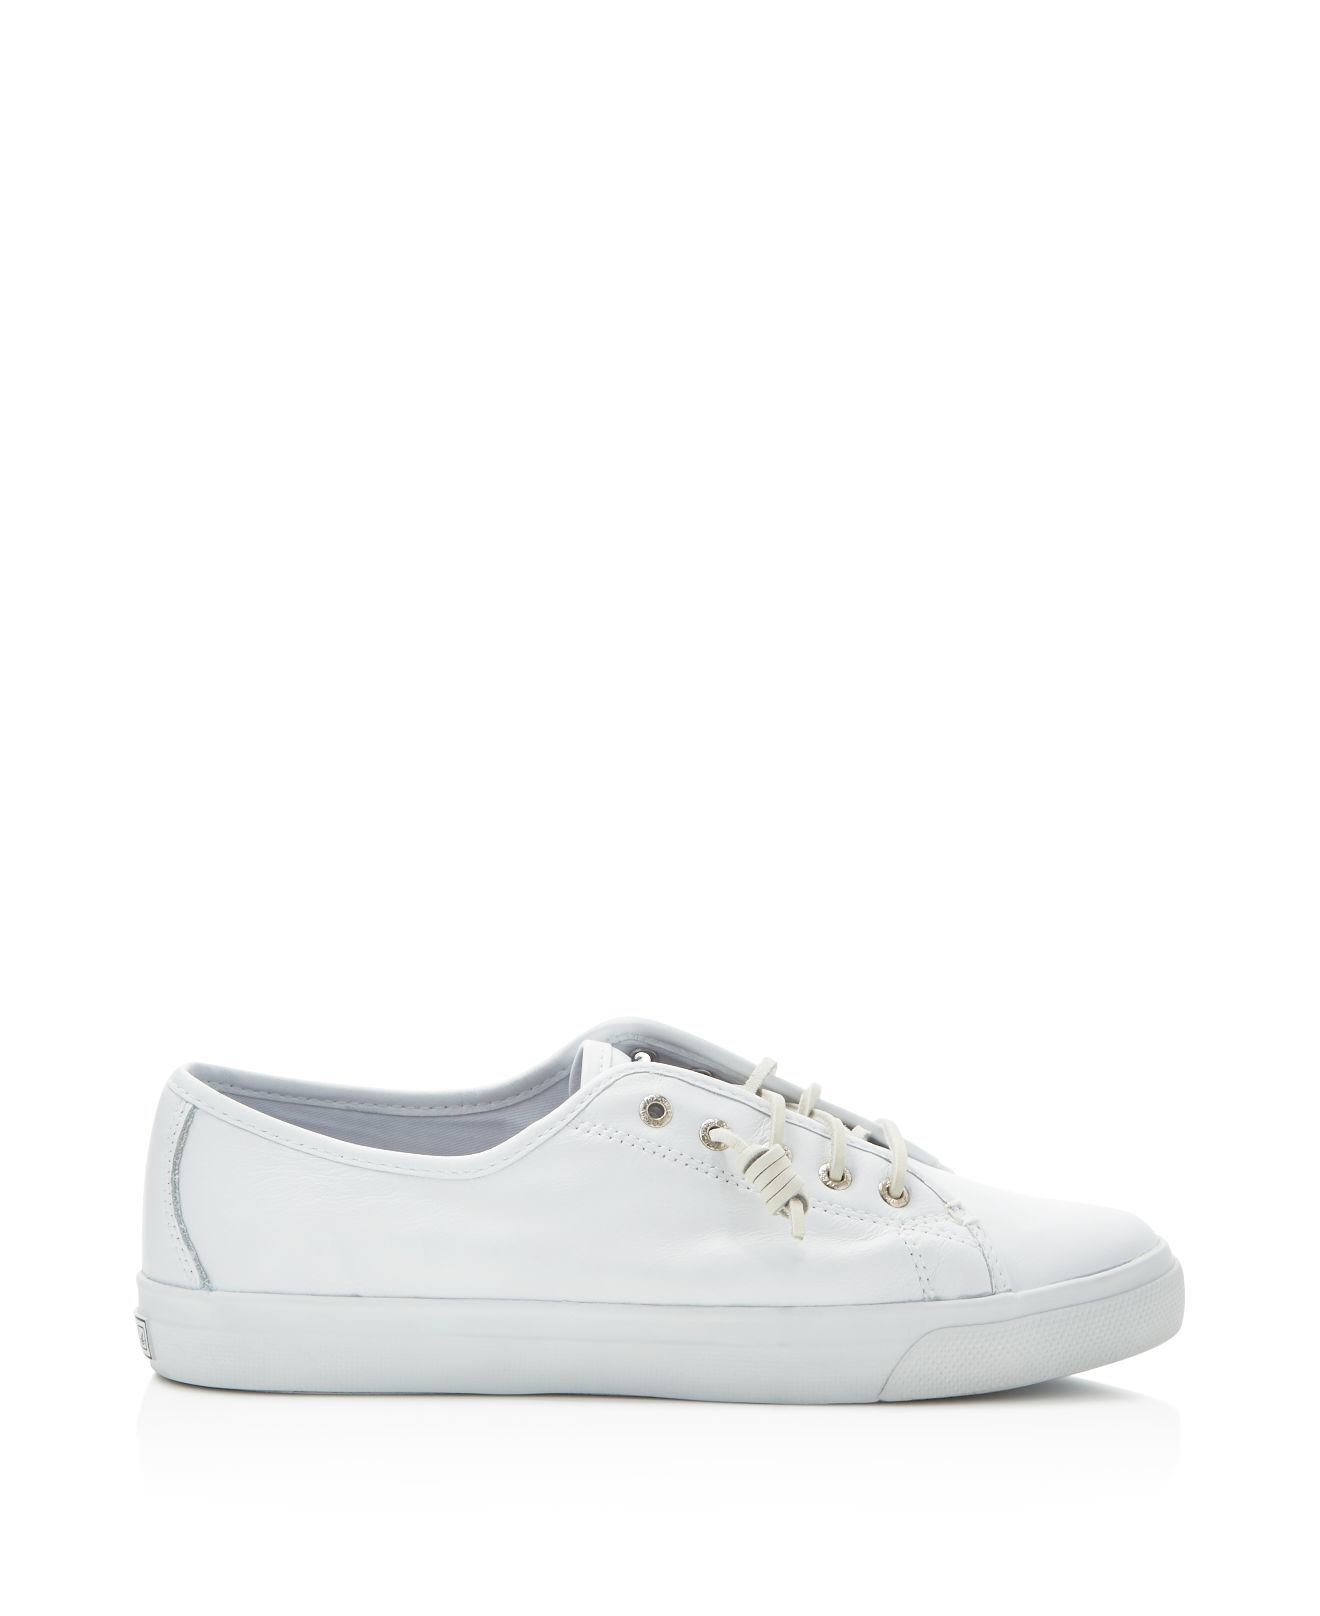 Sperry Top-Sider Leather Seacoast Sneakers in White